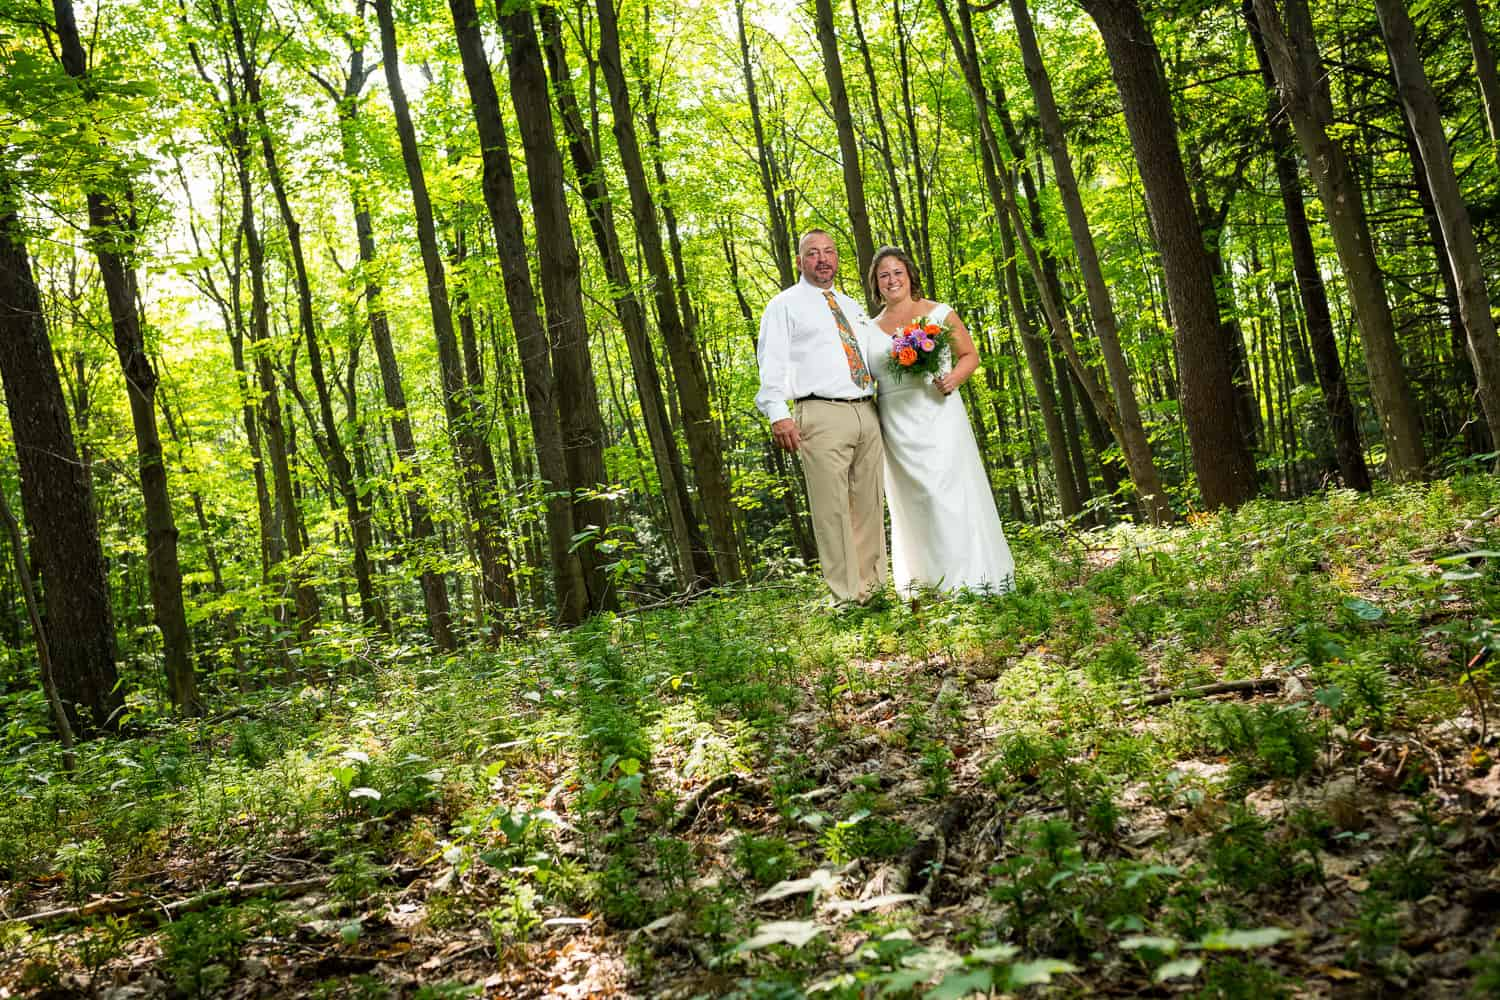 Paula and Dwayne before their wedding at Luensman Overview Park on Thayer Hill.